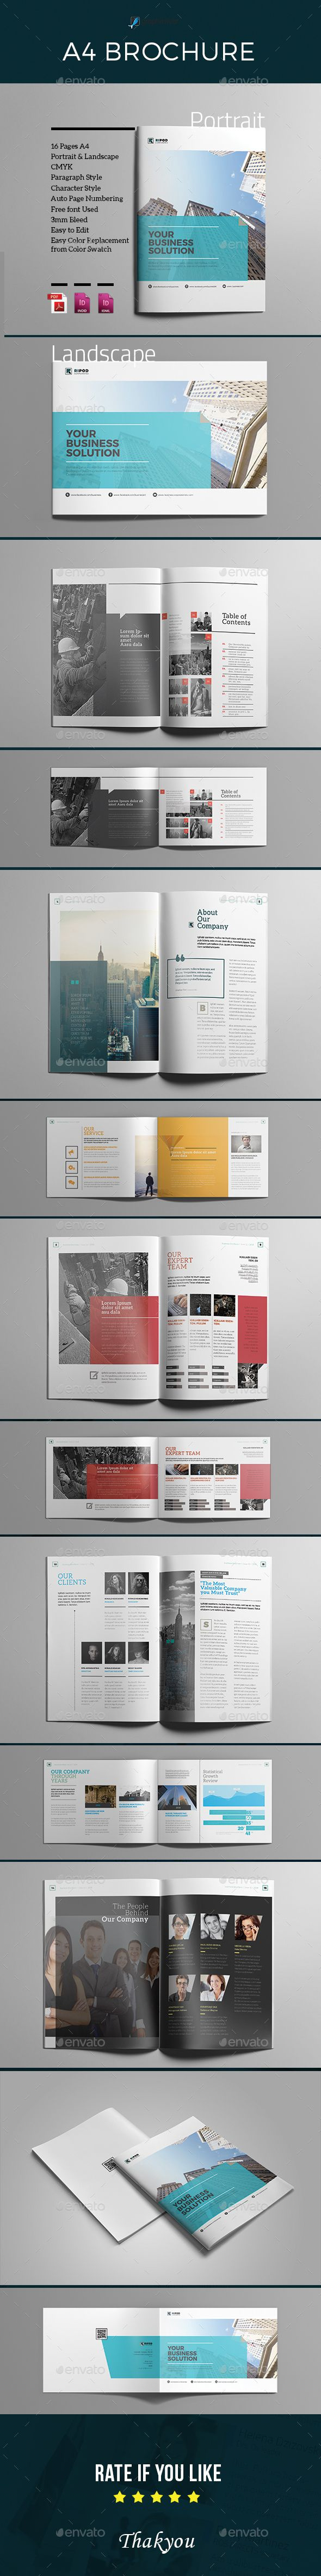 A4 Indesign Brochure | Editorial, Diseño editorial y Revistas